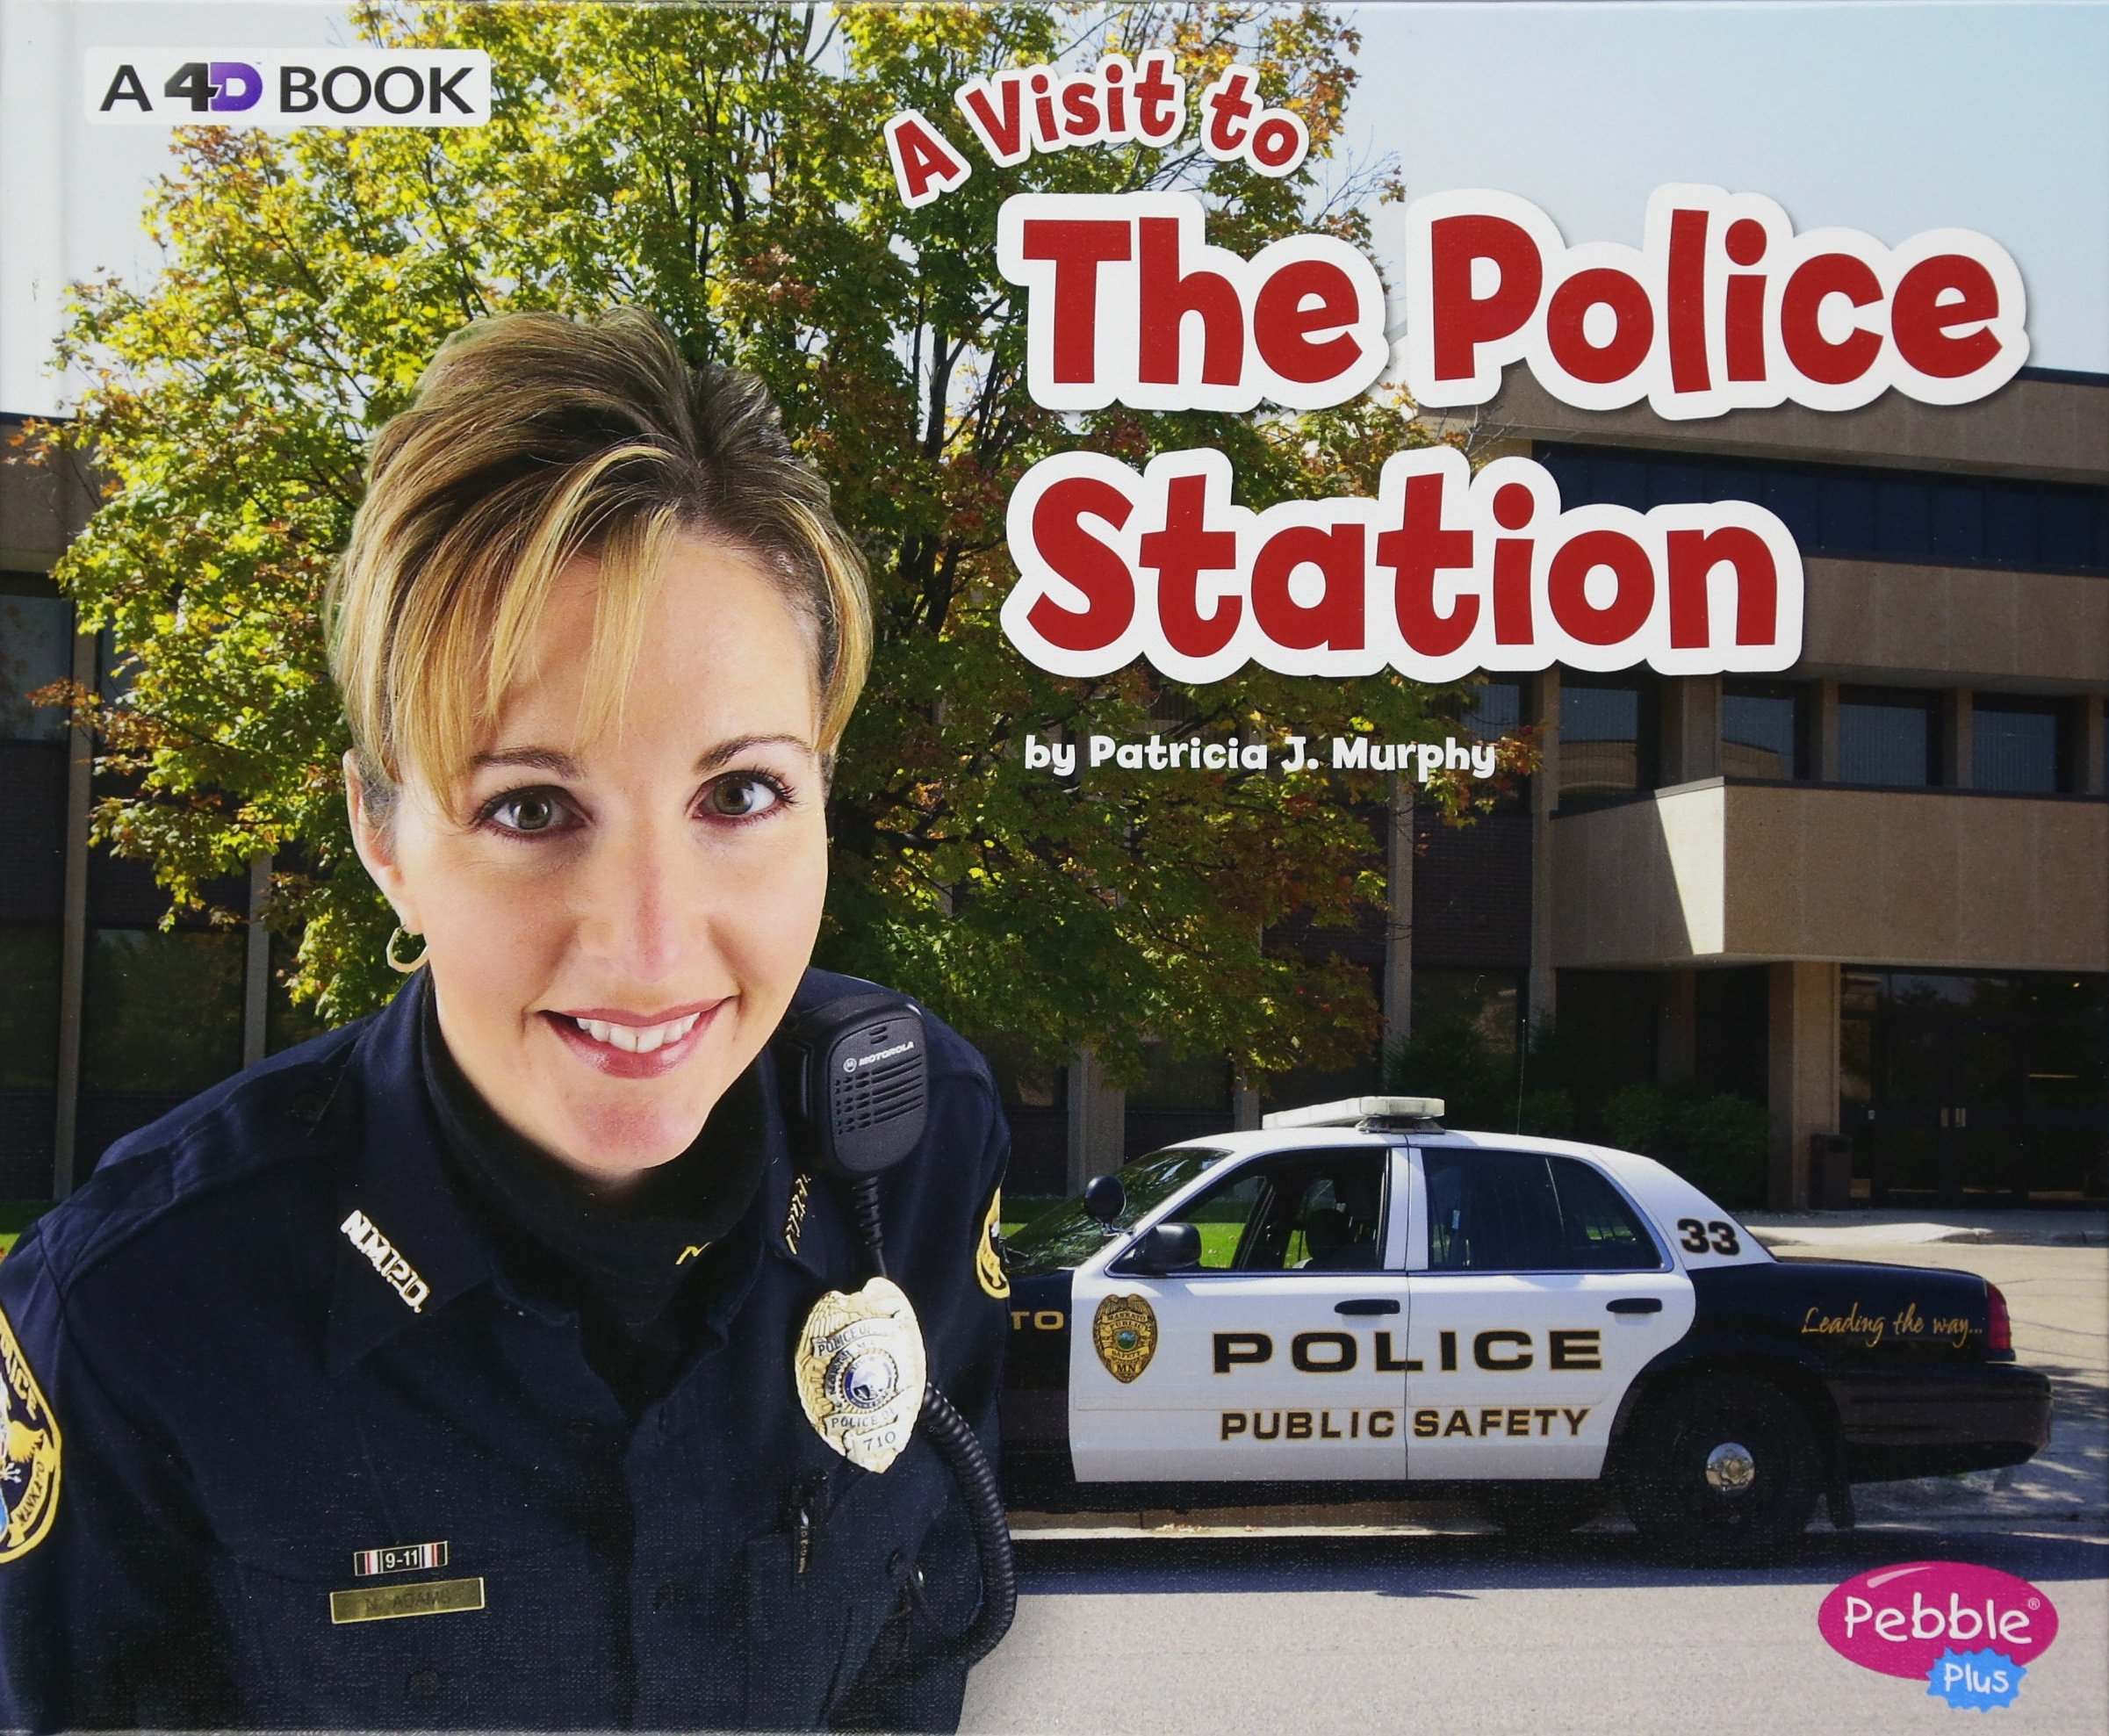 The Police Station: A 4D Book (A Visit to...)